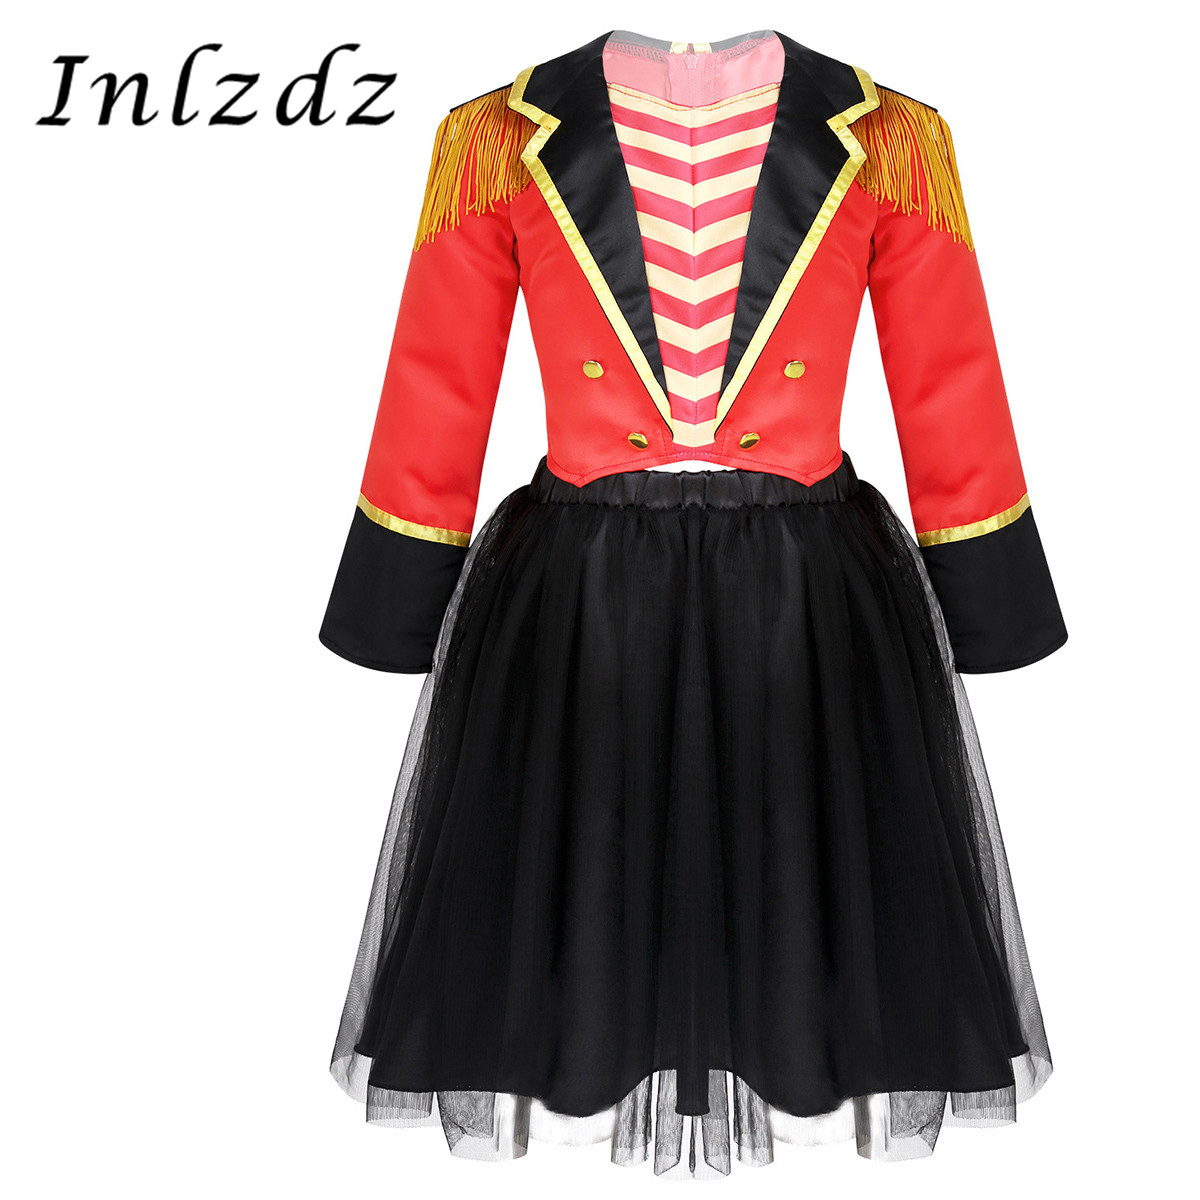 Kids Girls Circus Ringmaster Cosplay Costume Carnival Halloween Outfit Jacket with Mesh Tutu Skirt Set Role Play Games Clothes